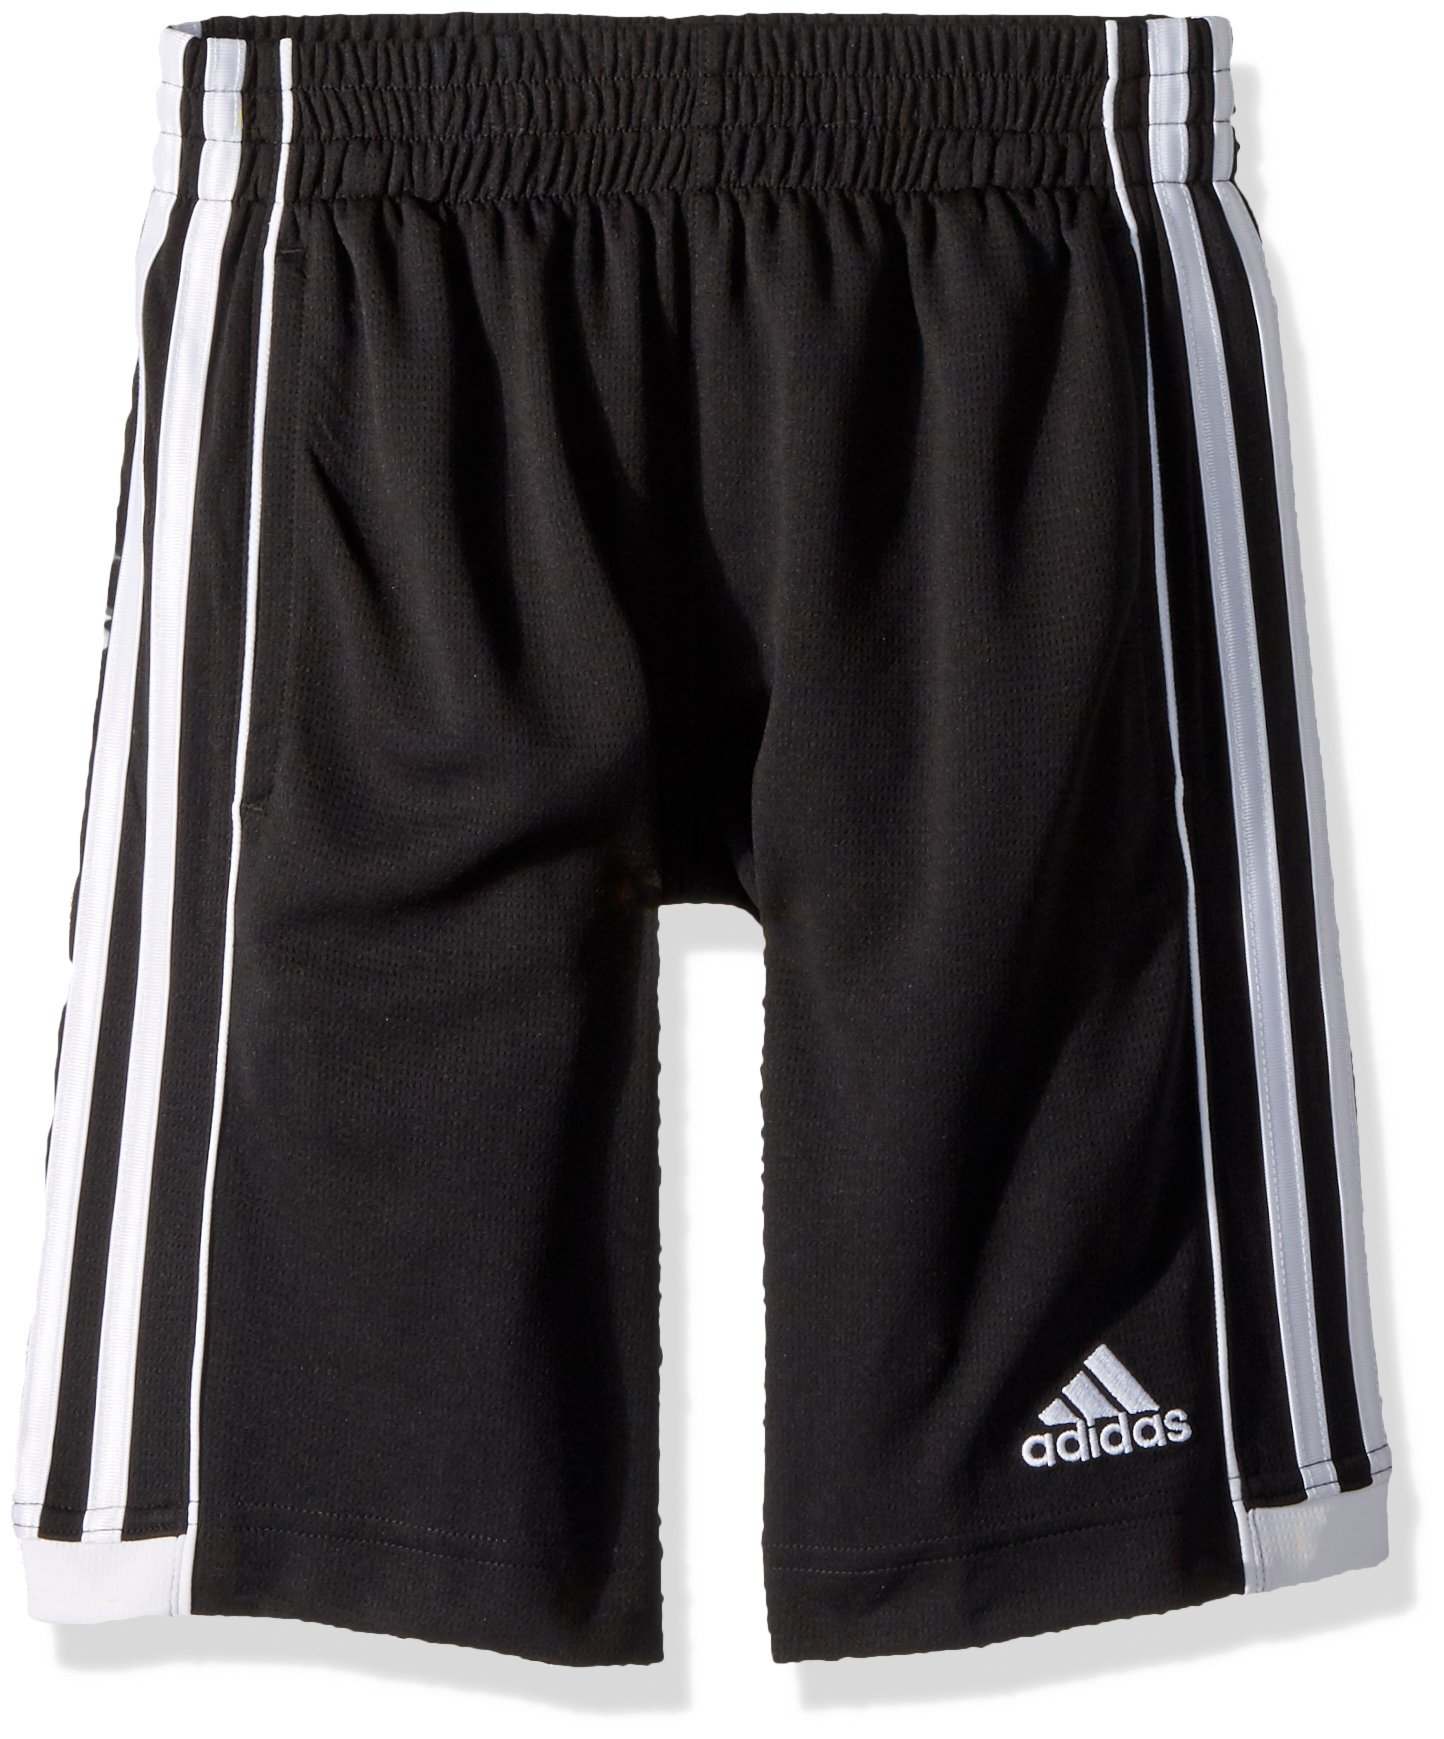 adidas Men's Big Boys' Yrc Speed 18 Short, Mesh Black Adi, Medium